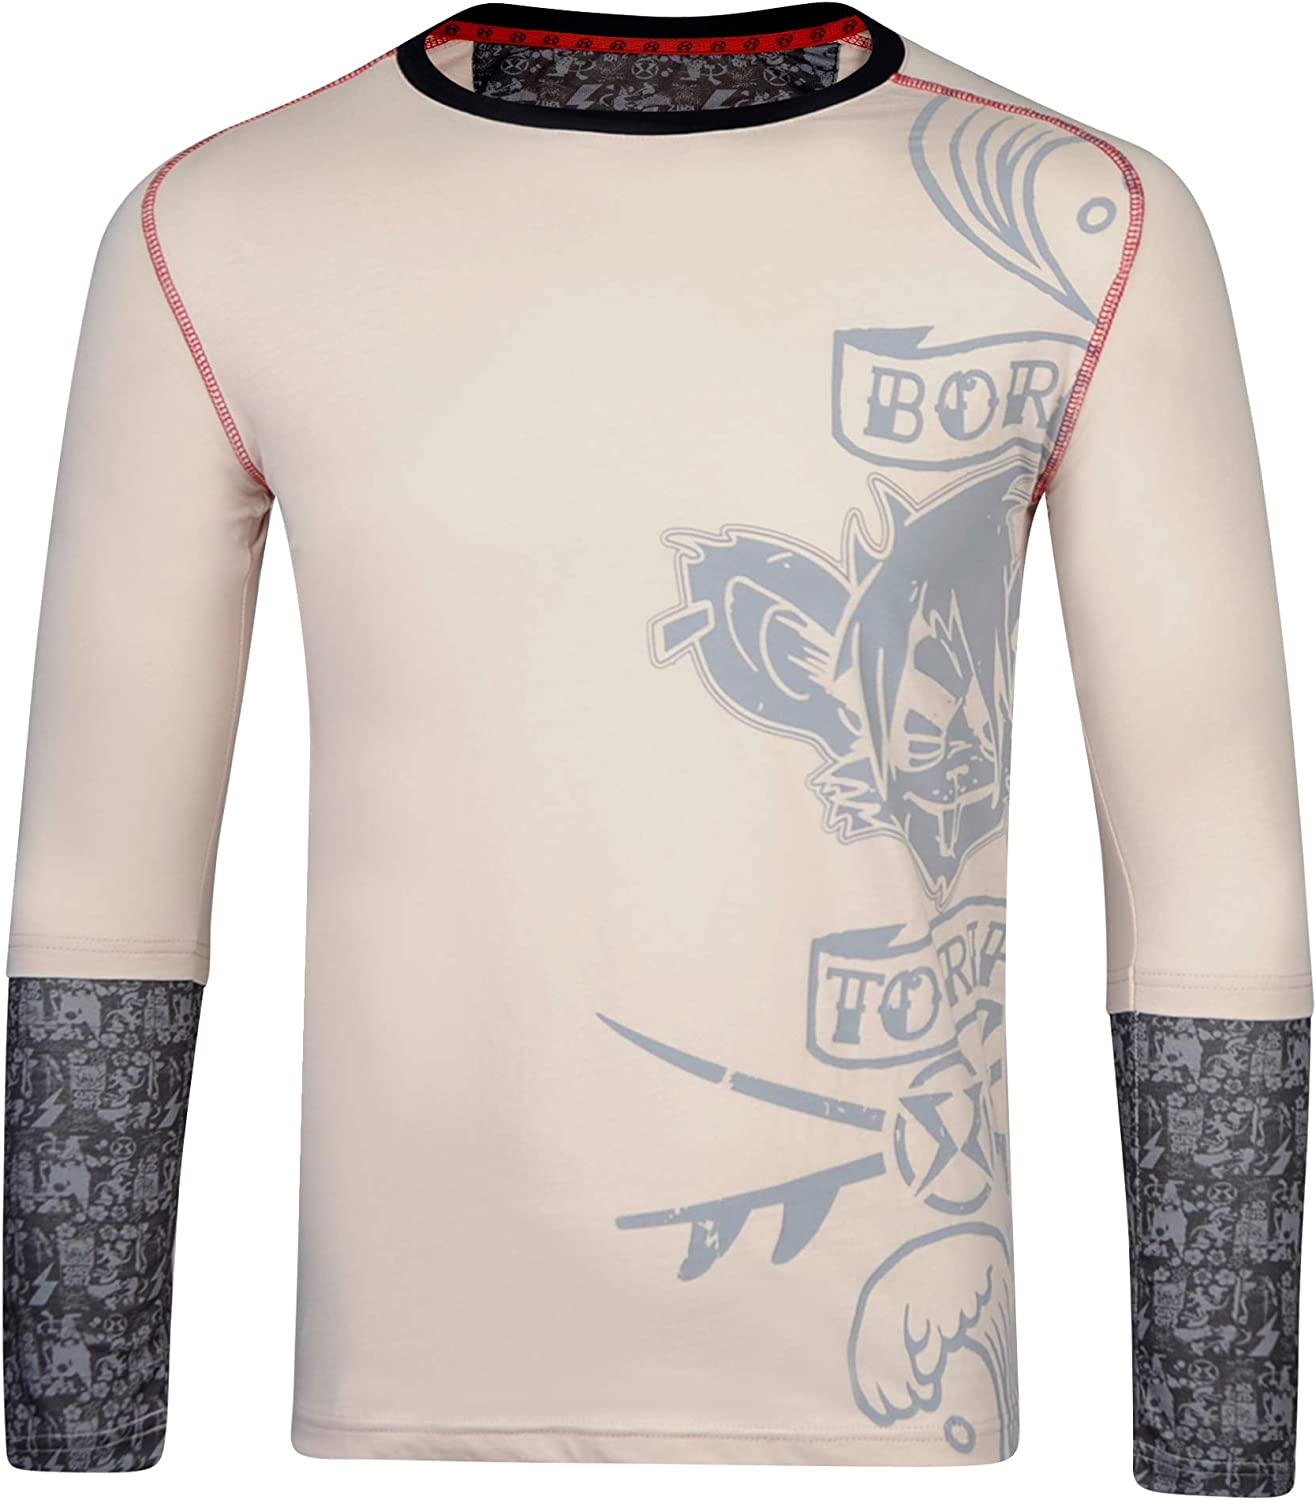 Surf Ratz Born to Rip Kids Long Sleeved Overlay T Shirt for Boys Stone